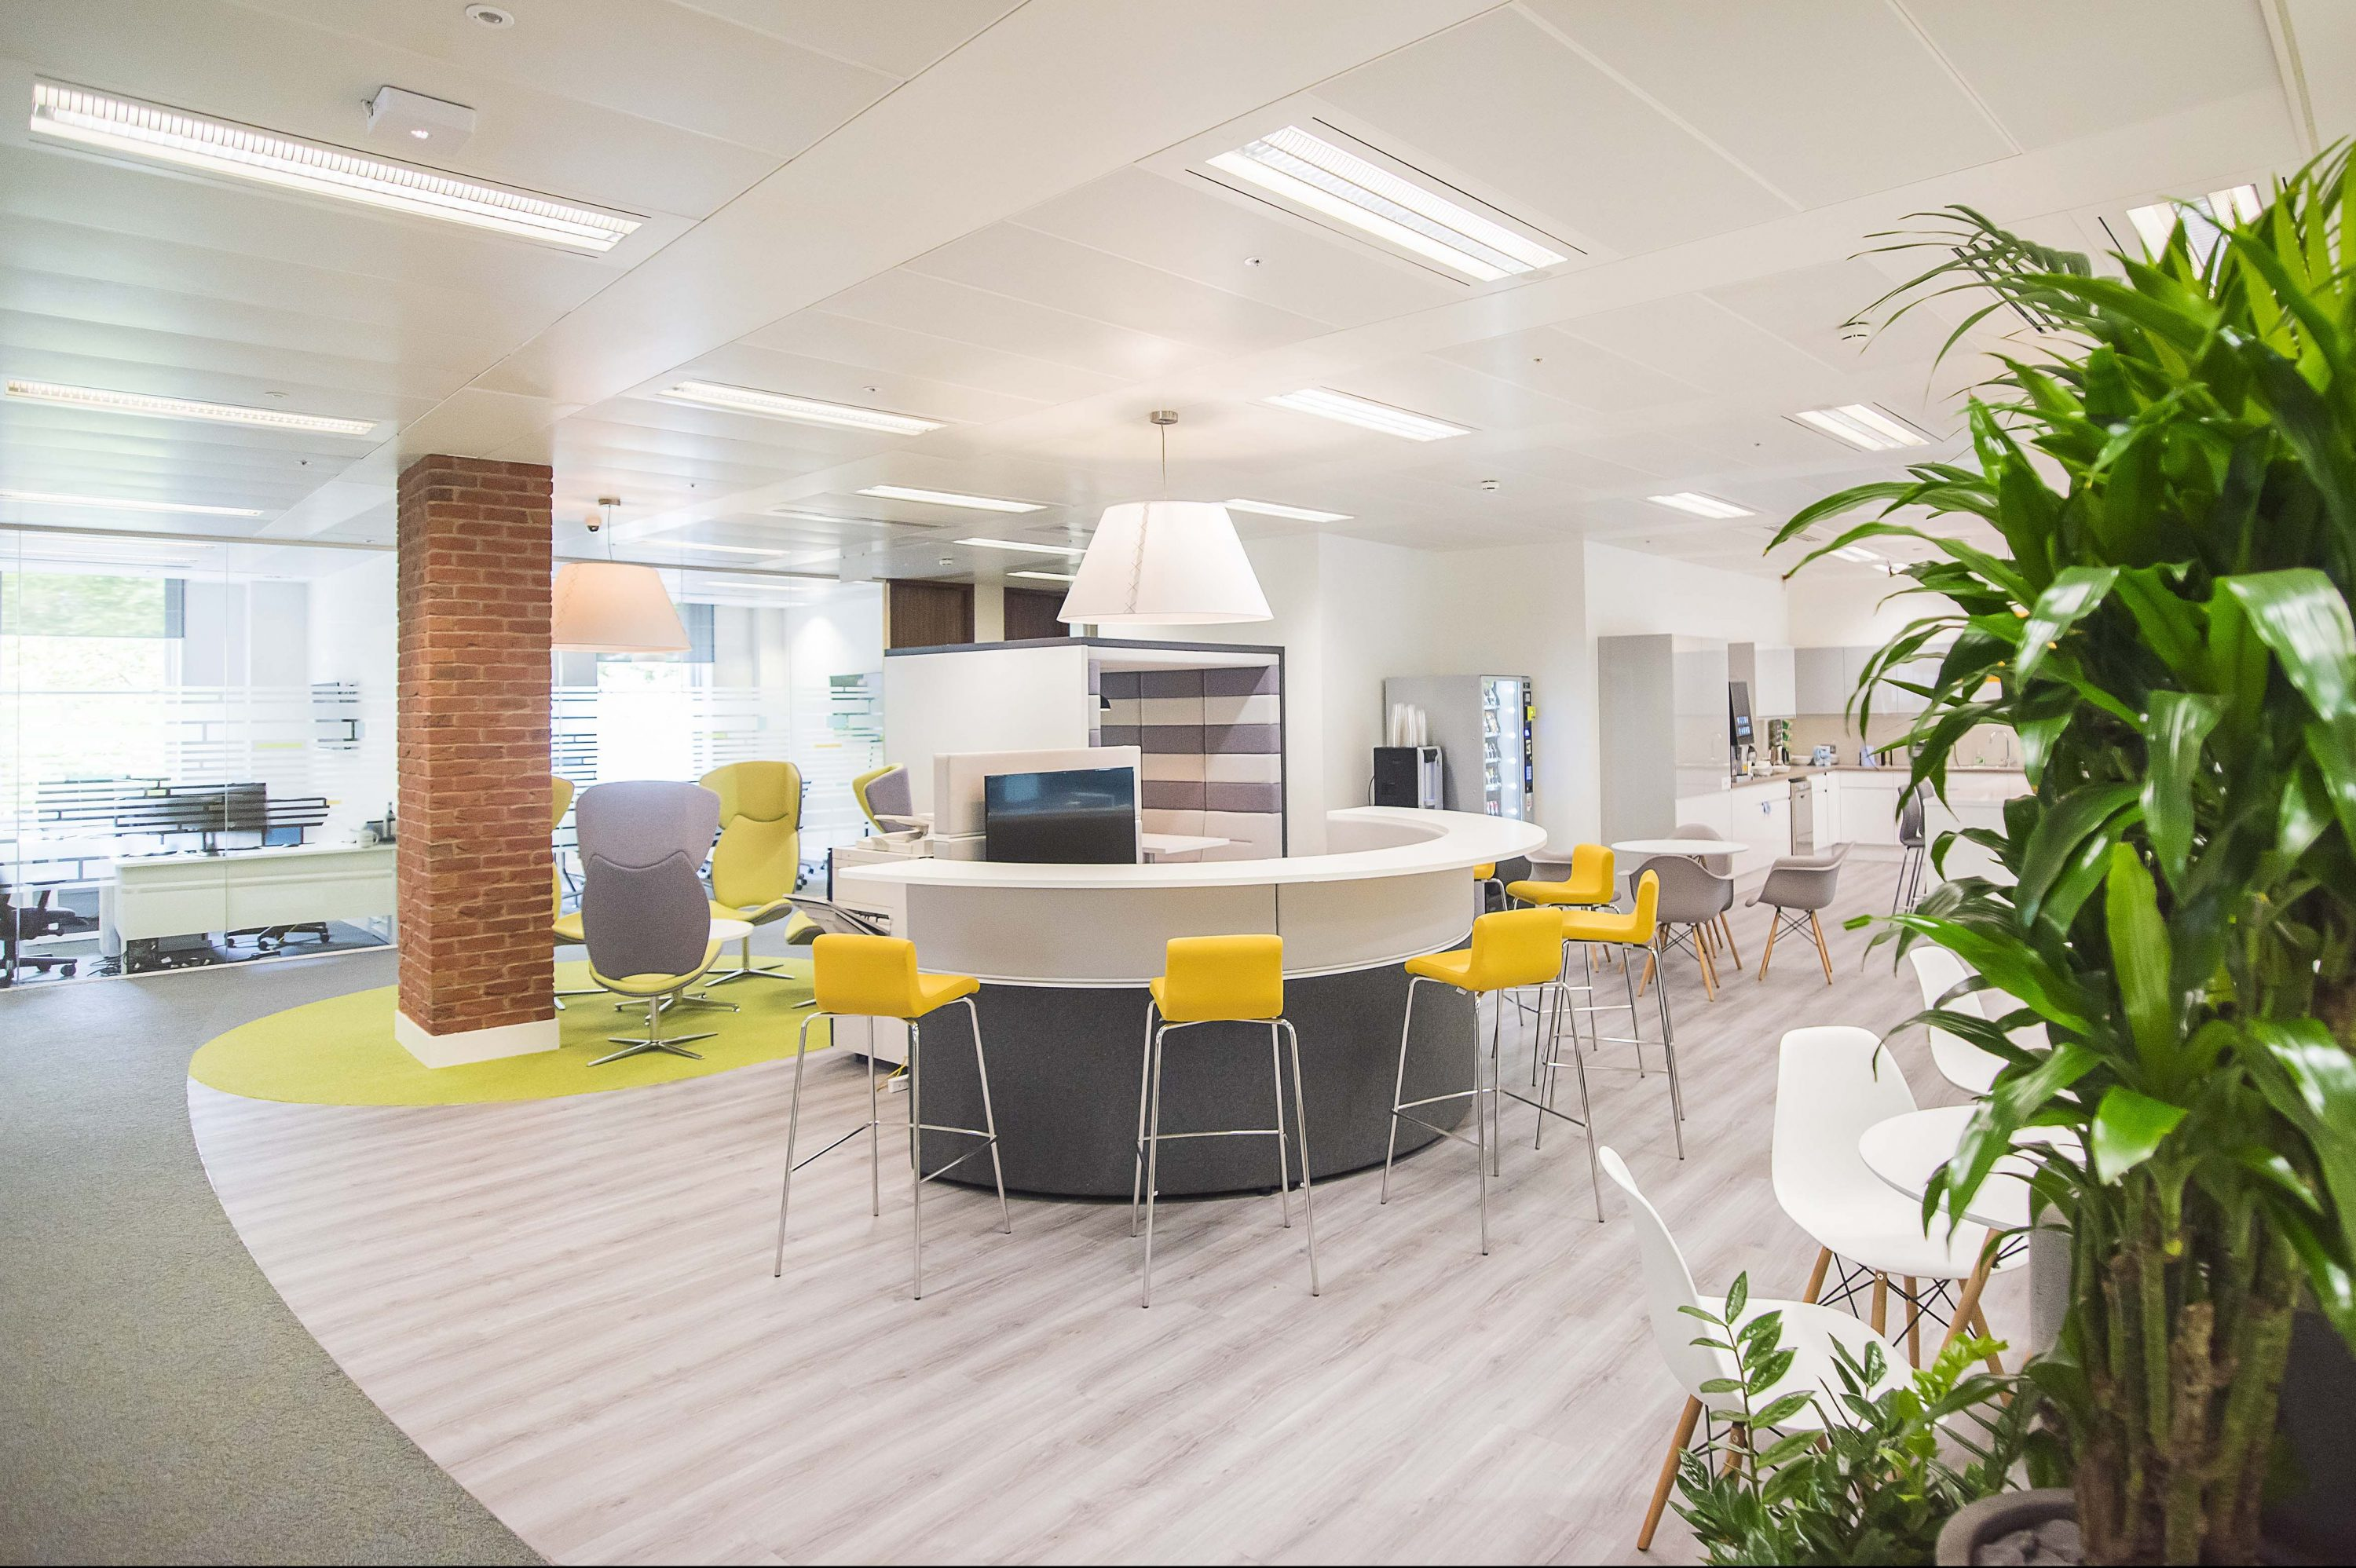 Office Design Trends: Office Design Trends For 2018 Focus On The Natural And